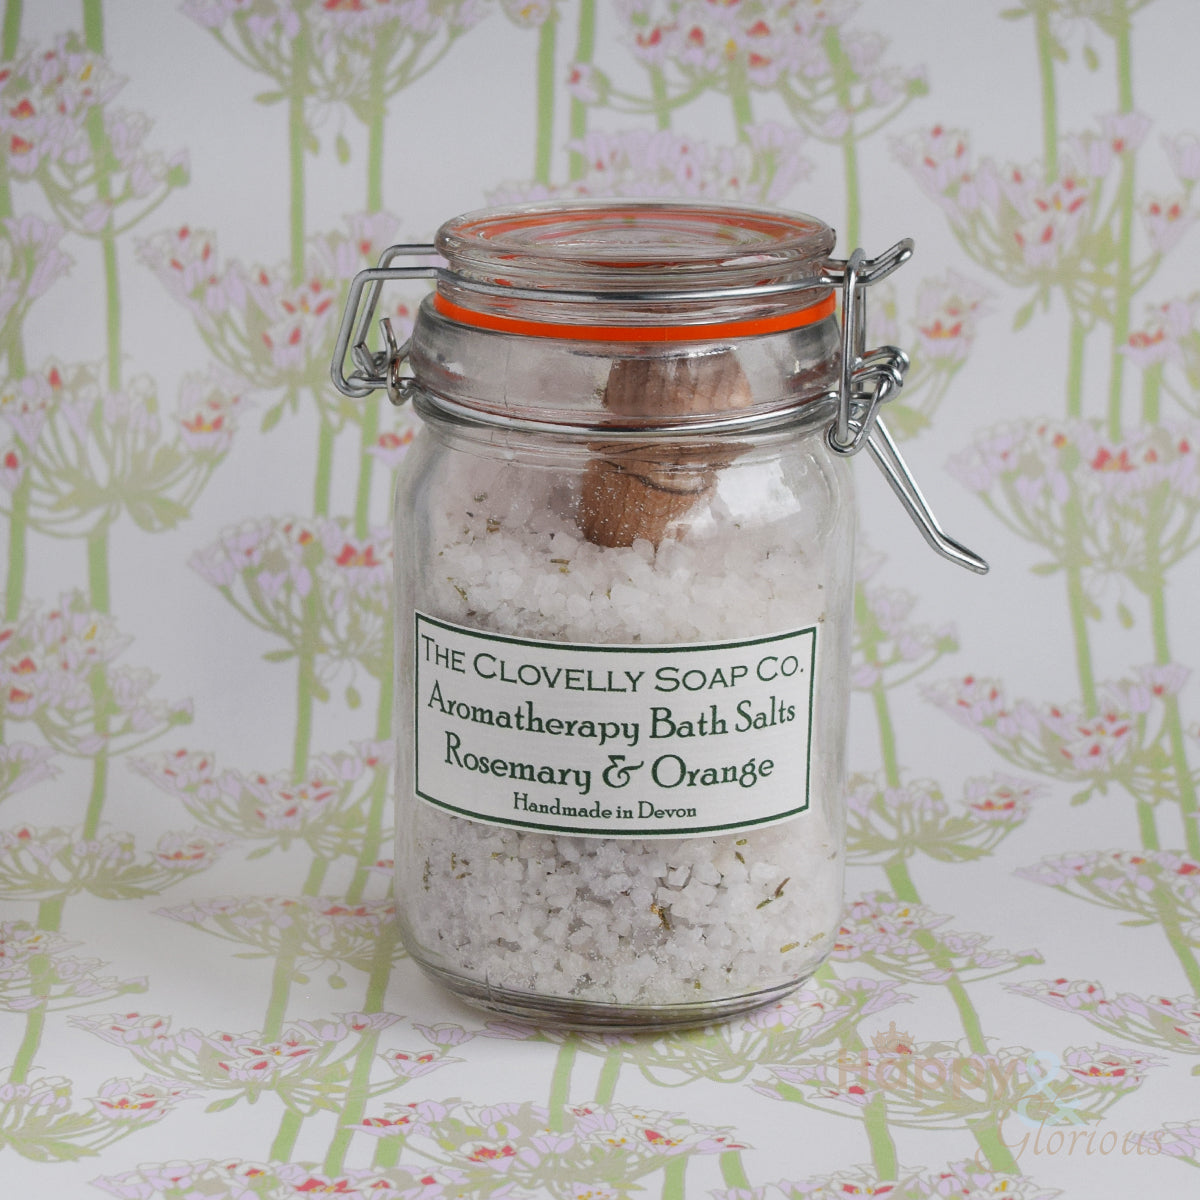 Rosemary & Orange aromatherapy bath salts with wooden scoop